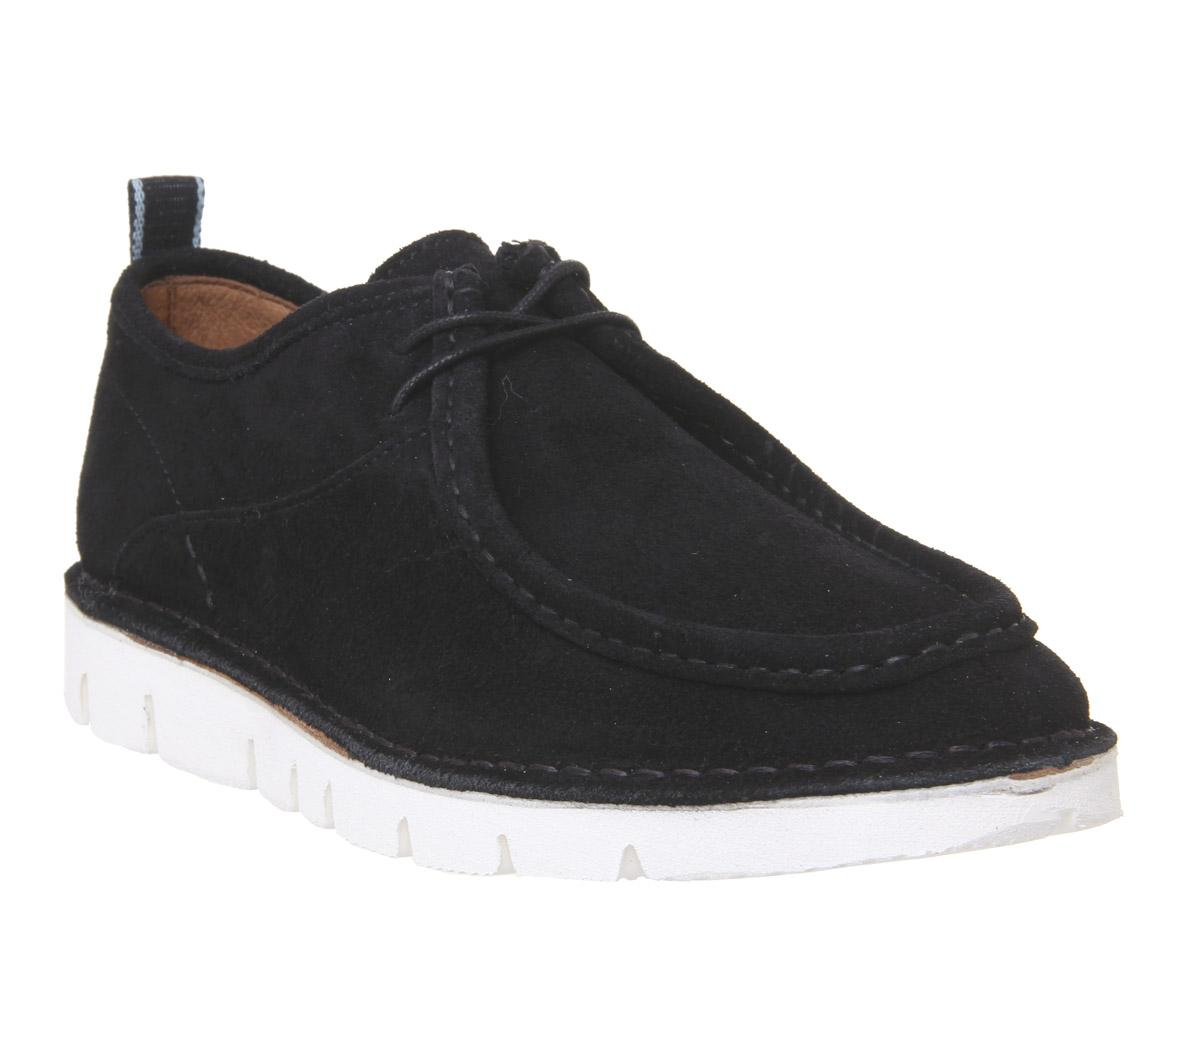 Milford Moccasins Shoes